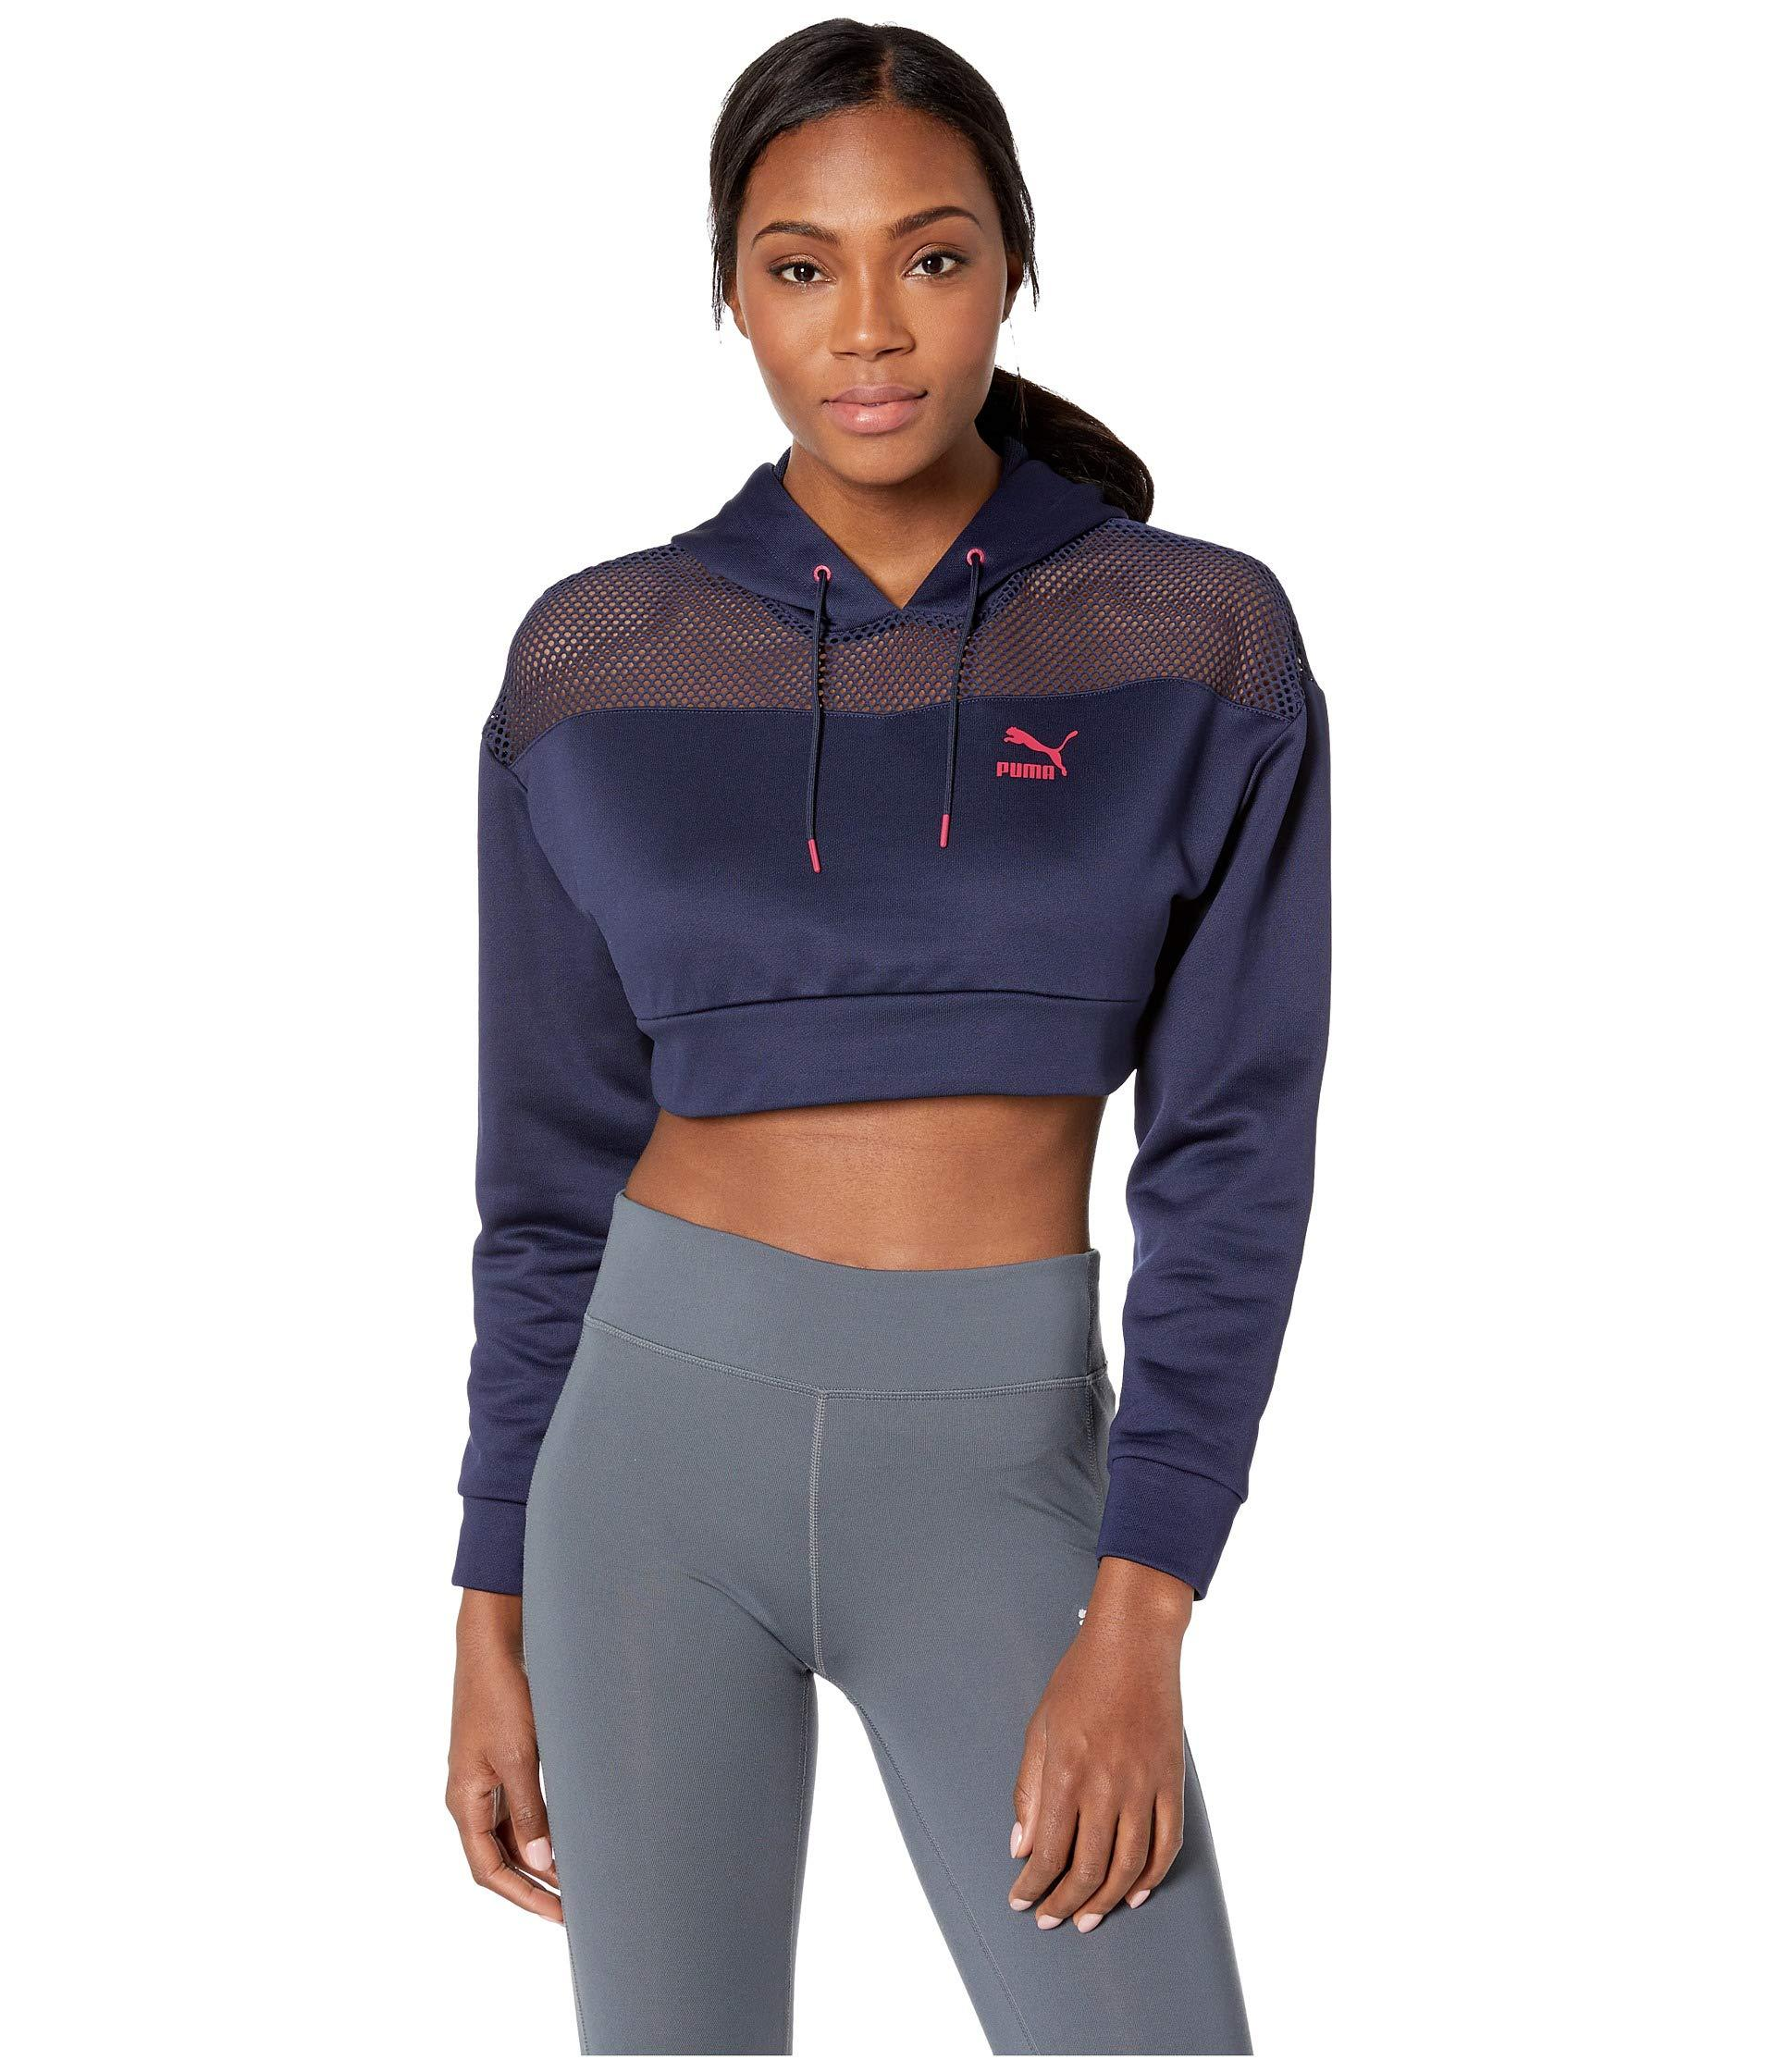 d02e39dbf3fe5 Lyst - PUMA Flourish Touch Of Life Cropped Hoodie (peacoat cerise ...